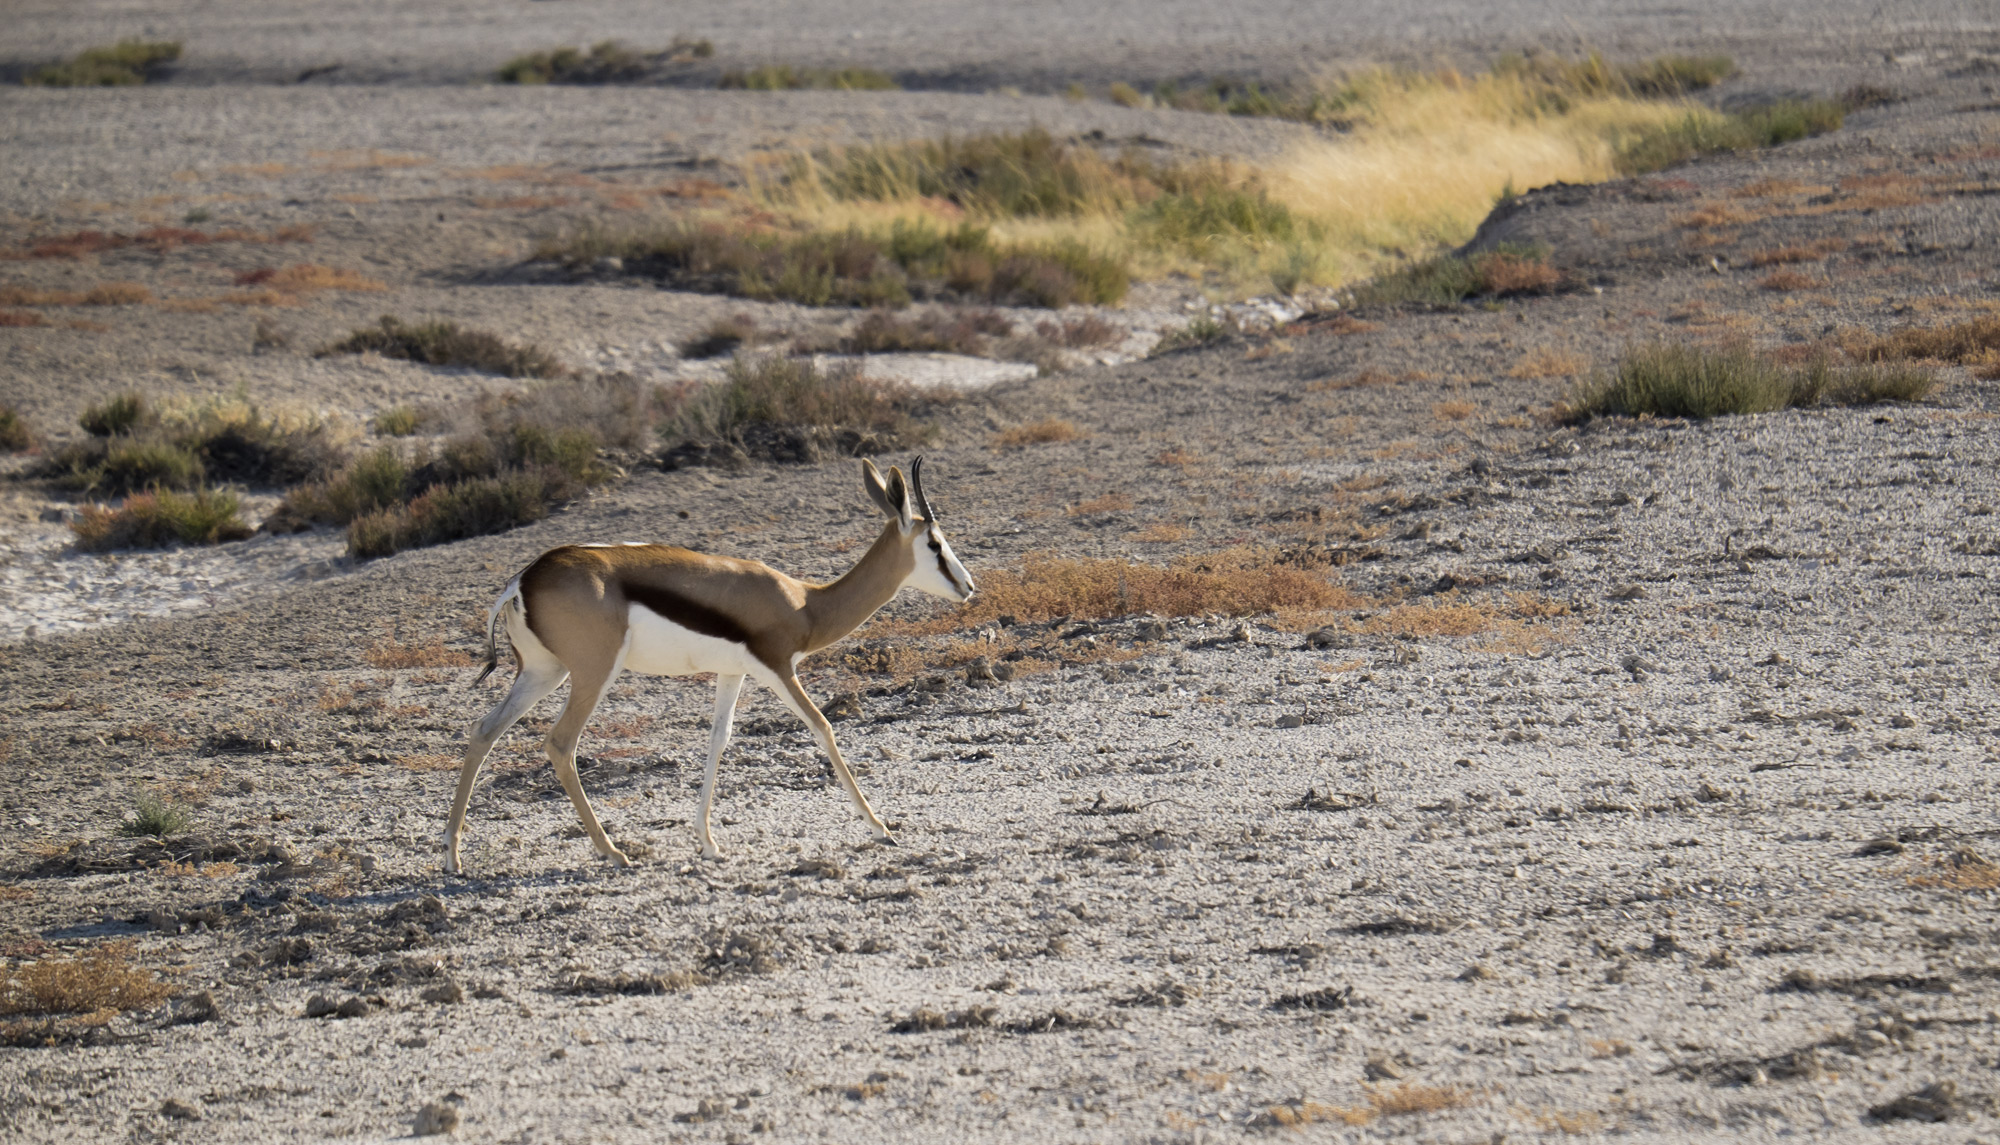 This elegant creature is a Springbok, it's at the bottom of the food chain and on the menu for most wildlife in the Etosha game...